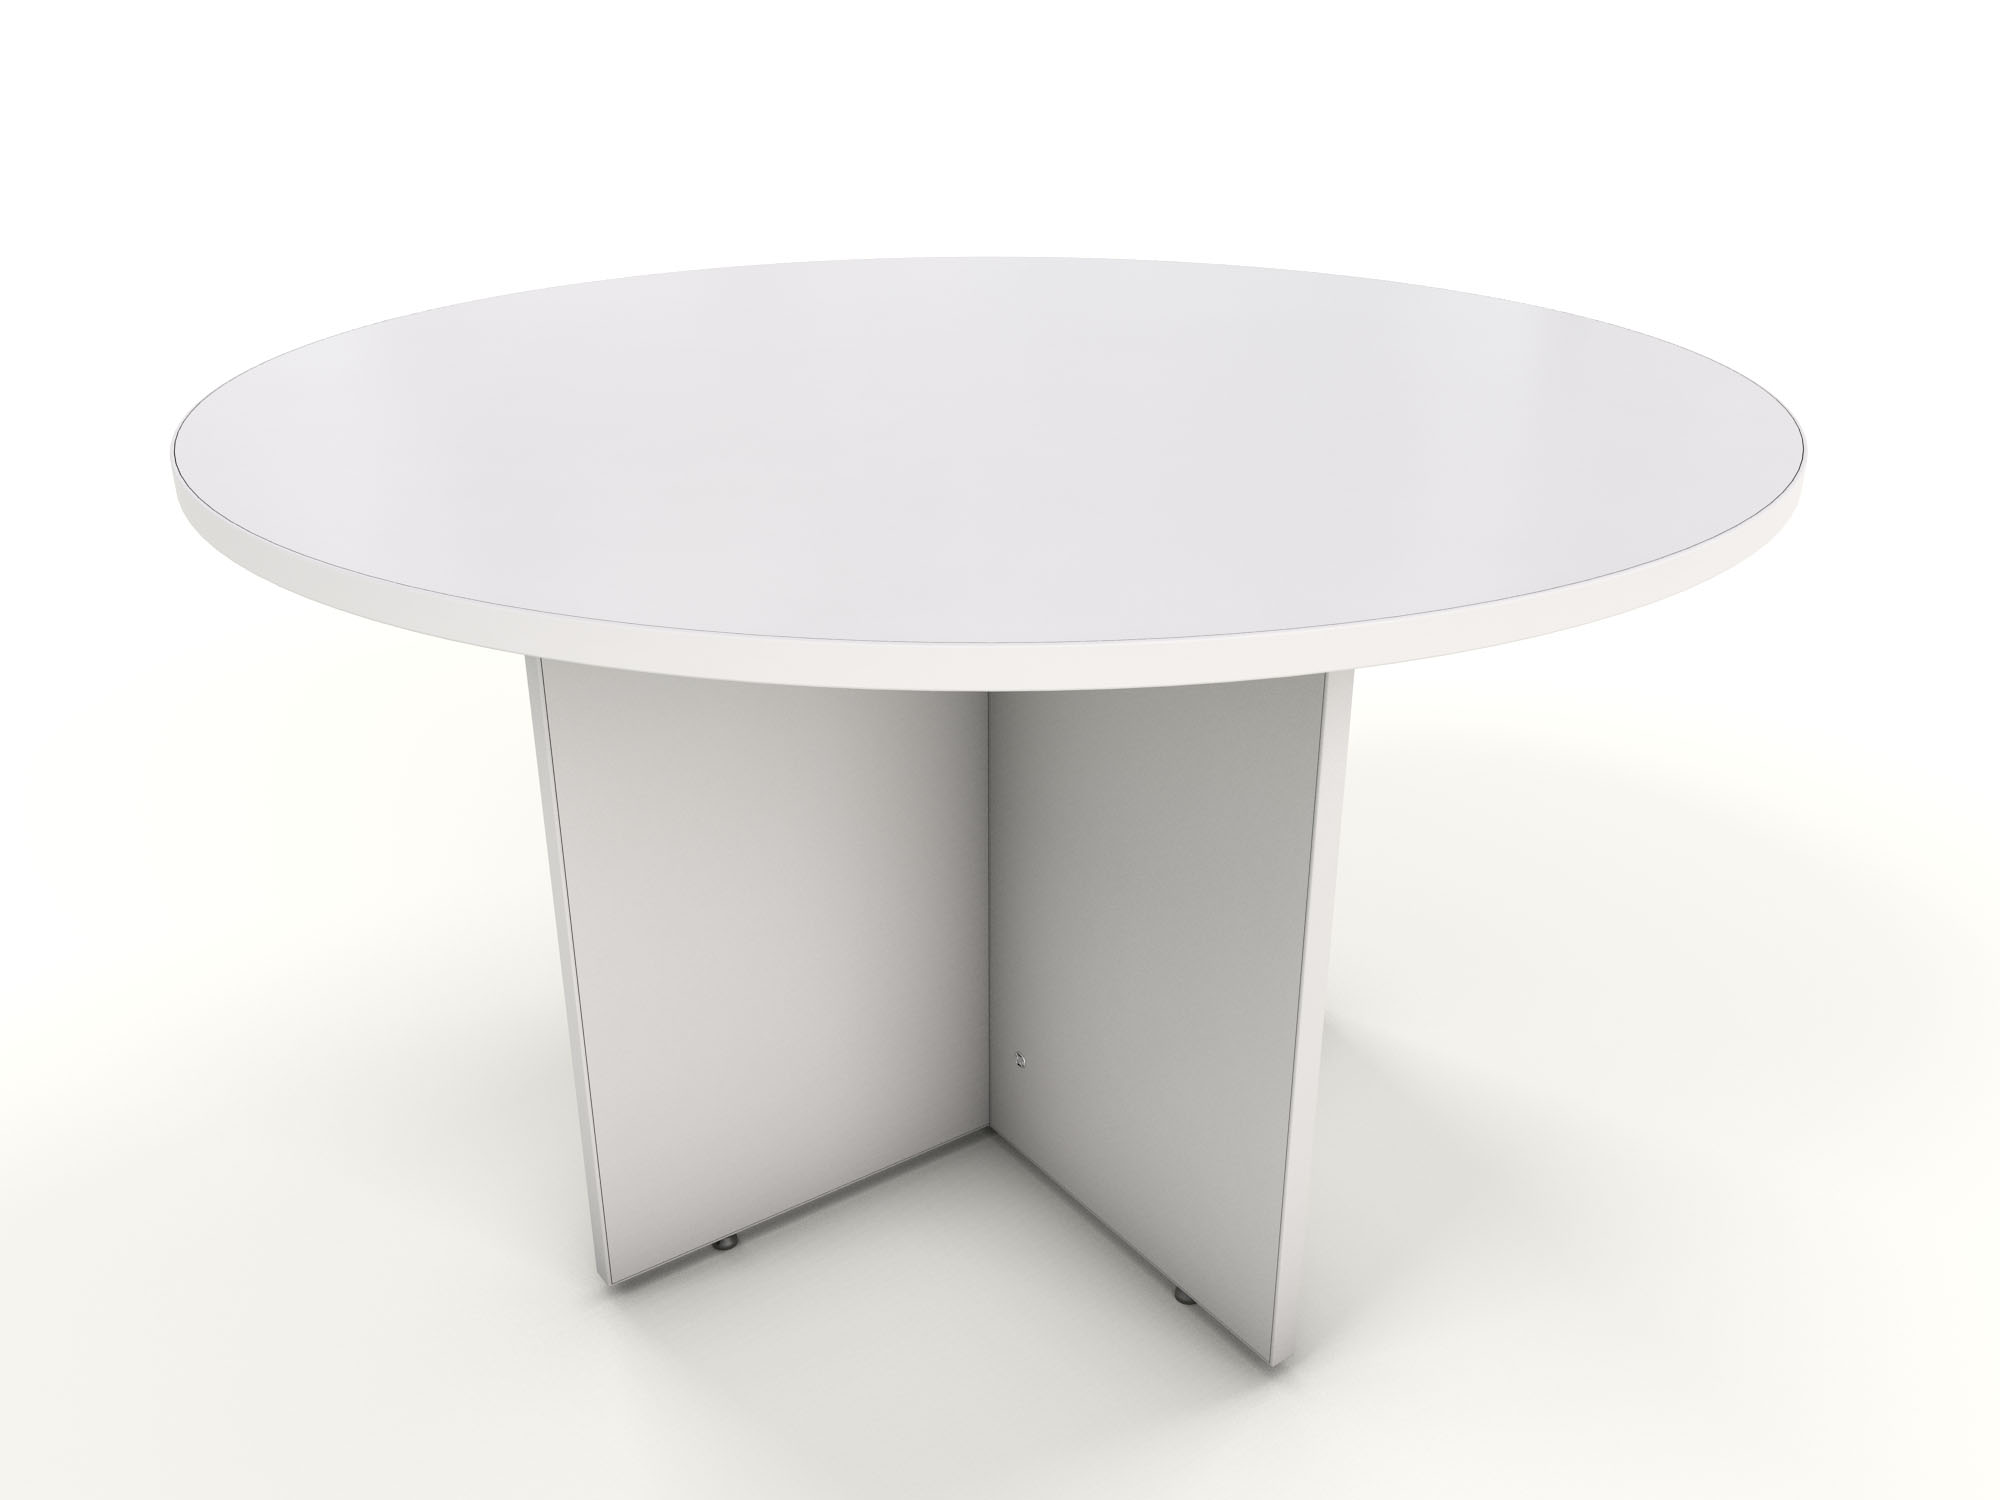 LINZ InternationalMeeting table